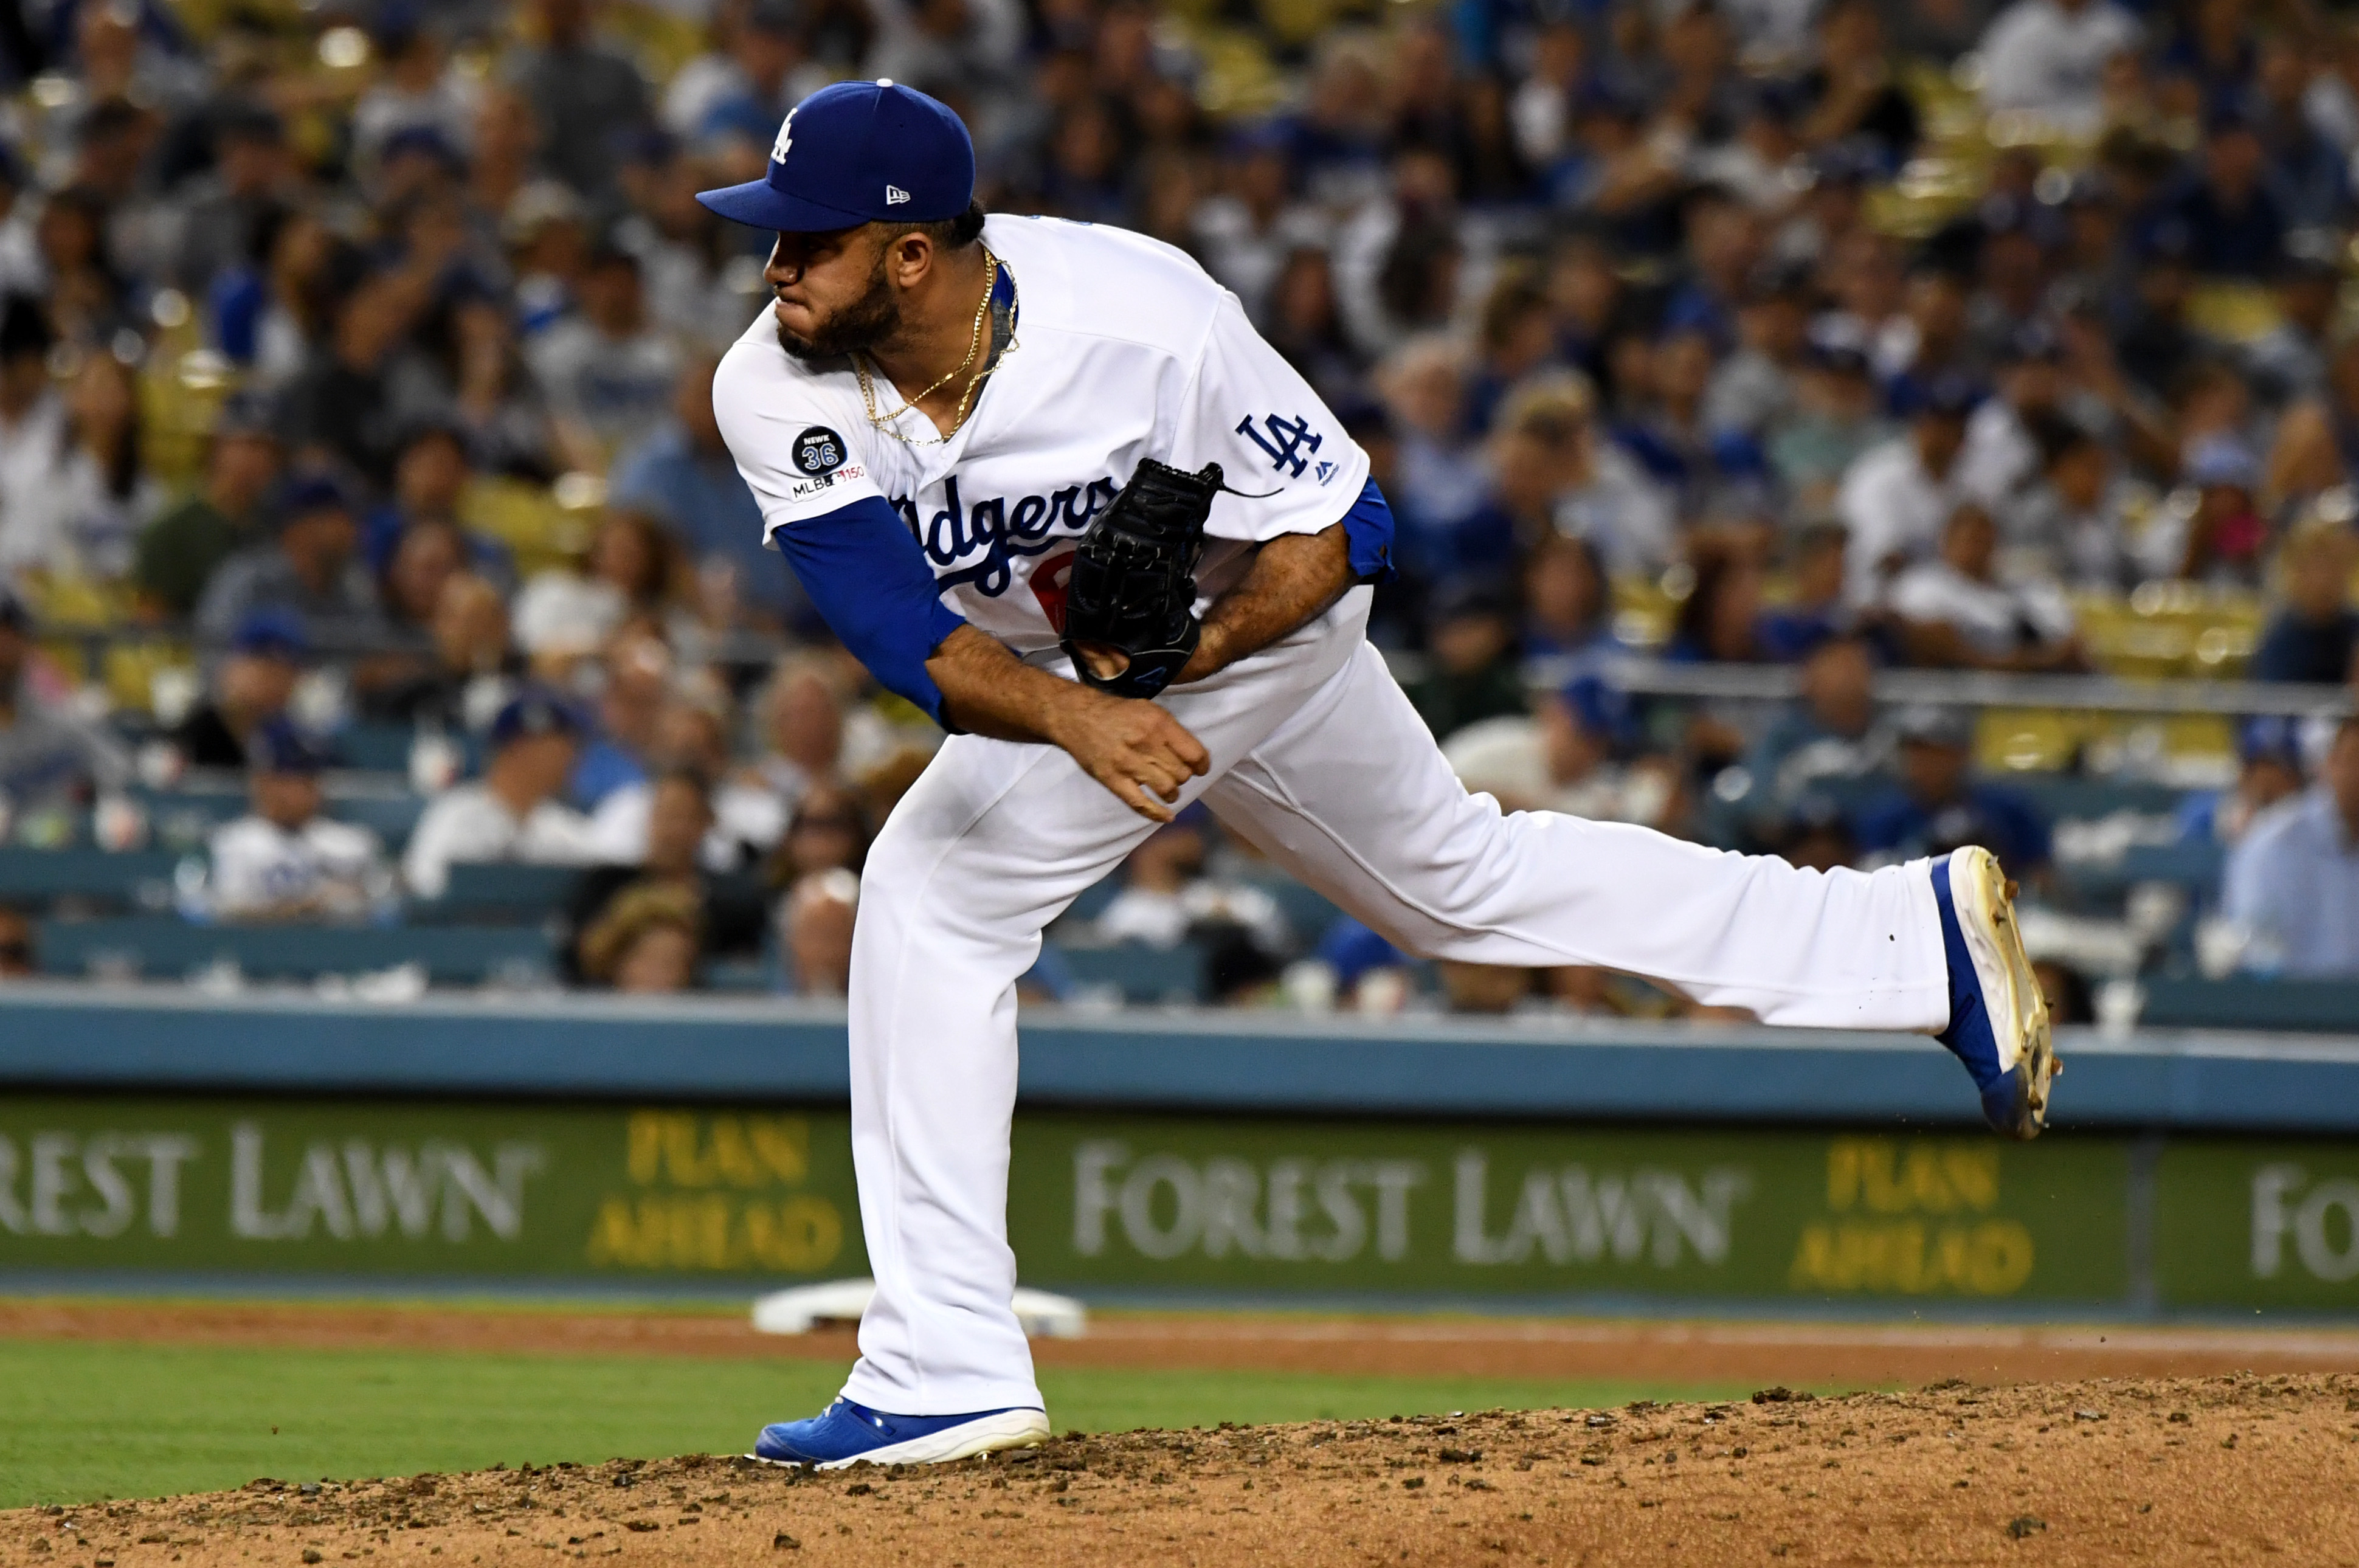 Los Angeles Dodgers v. Tampa Bay Rays